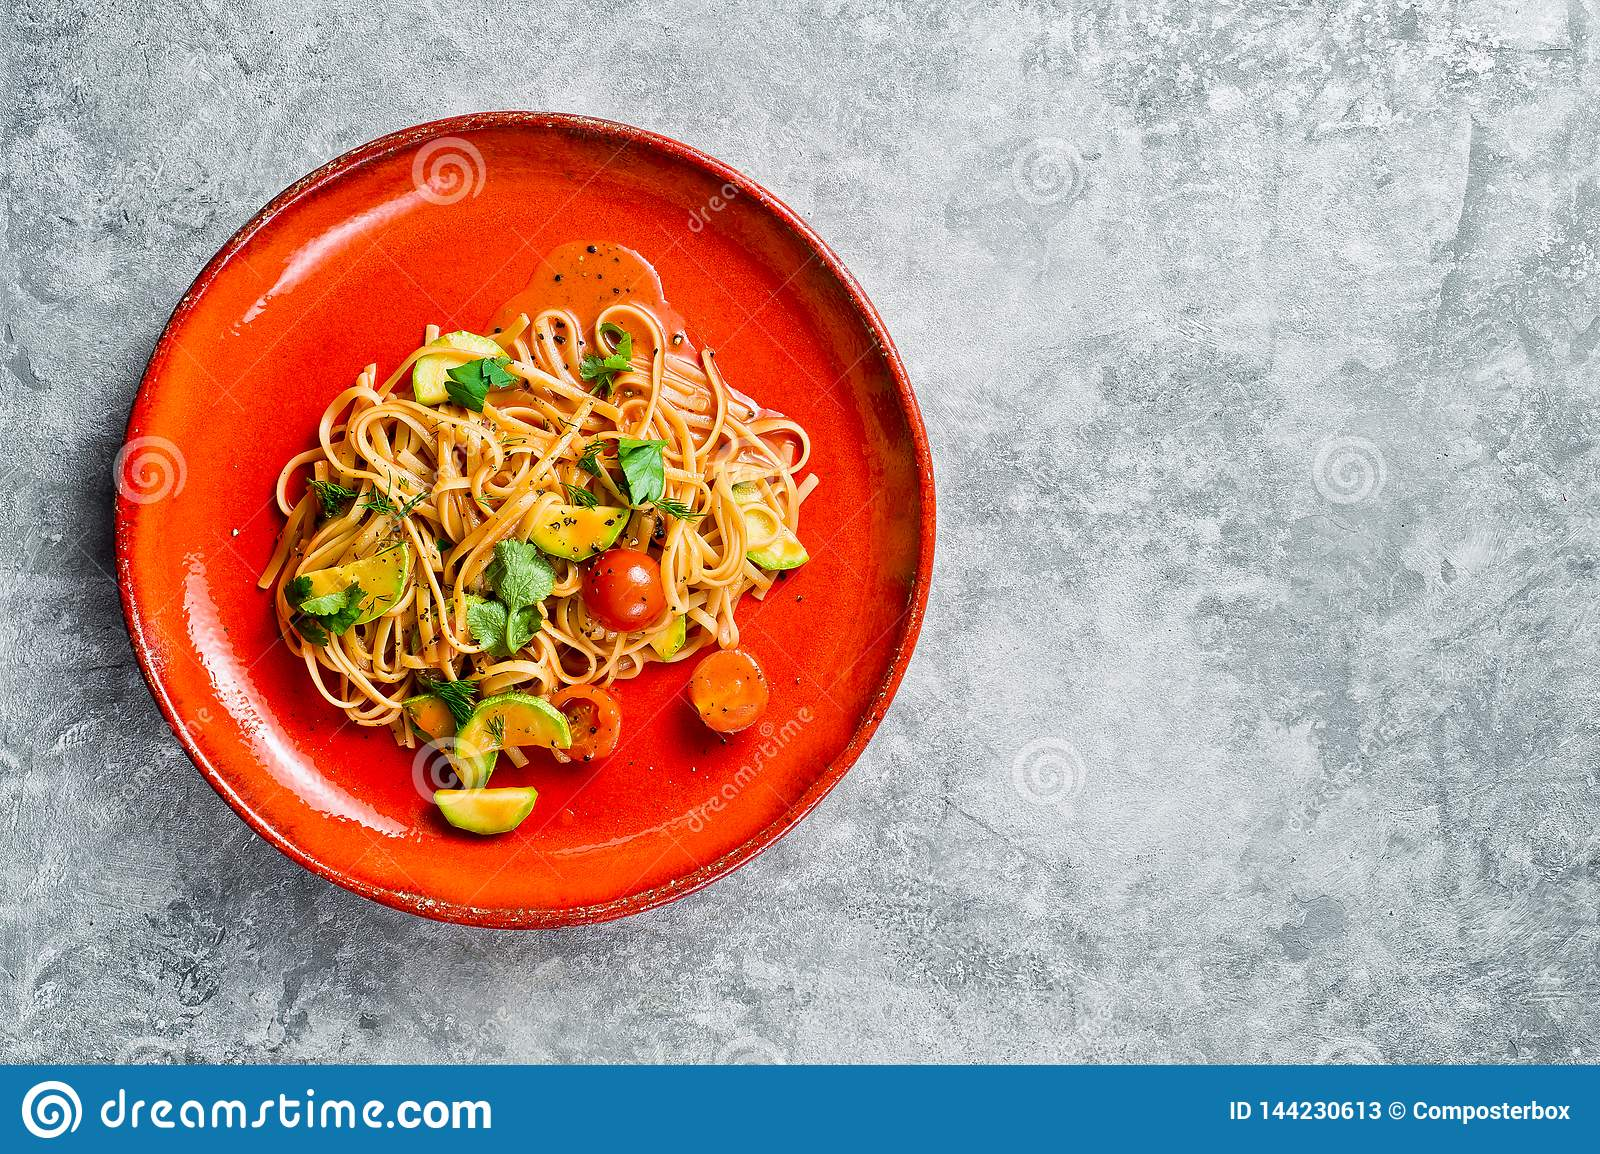 Vegetarian pasta with tomatoes, avacado and squash. Gray background, top view, space for text.